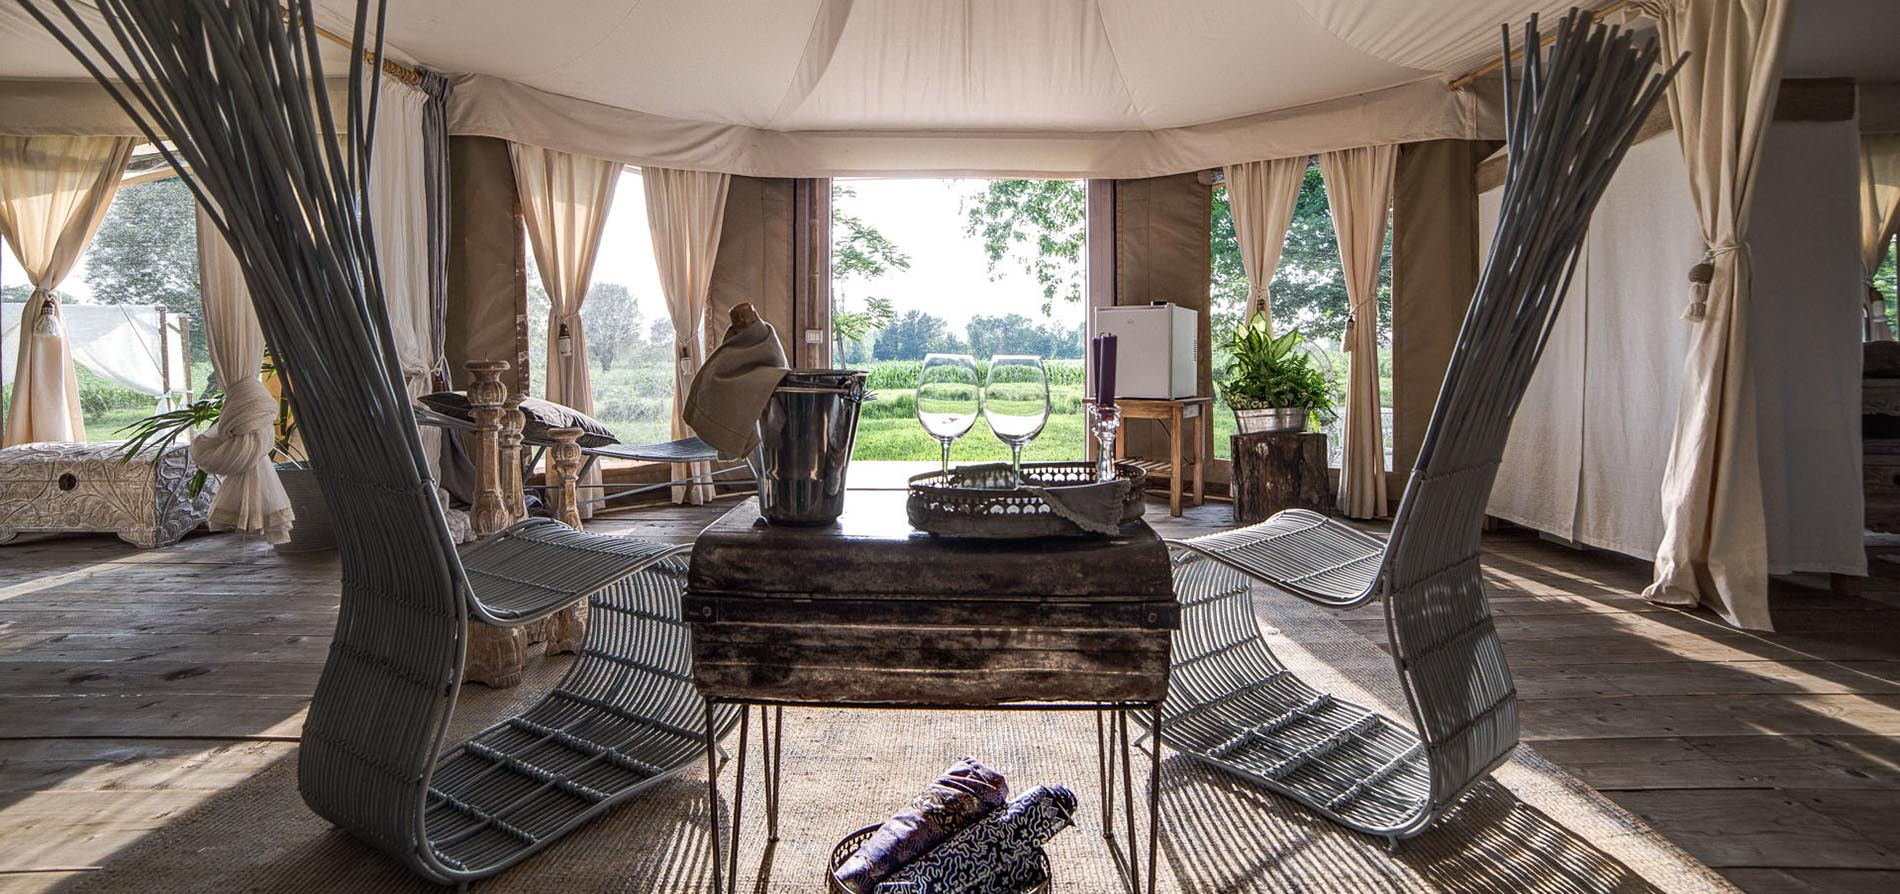 Glamping Canonici Di San Marco Luxury Resort In The